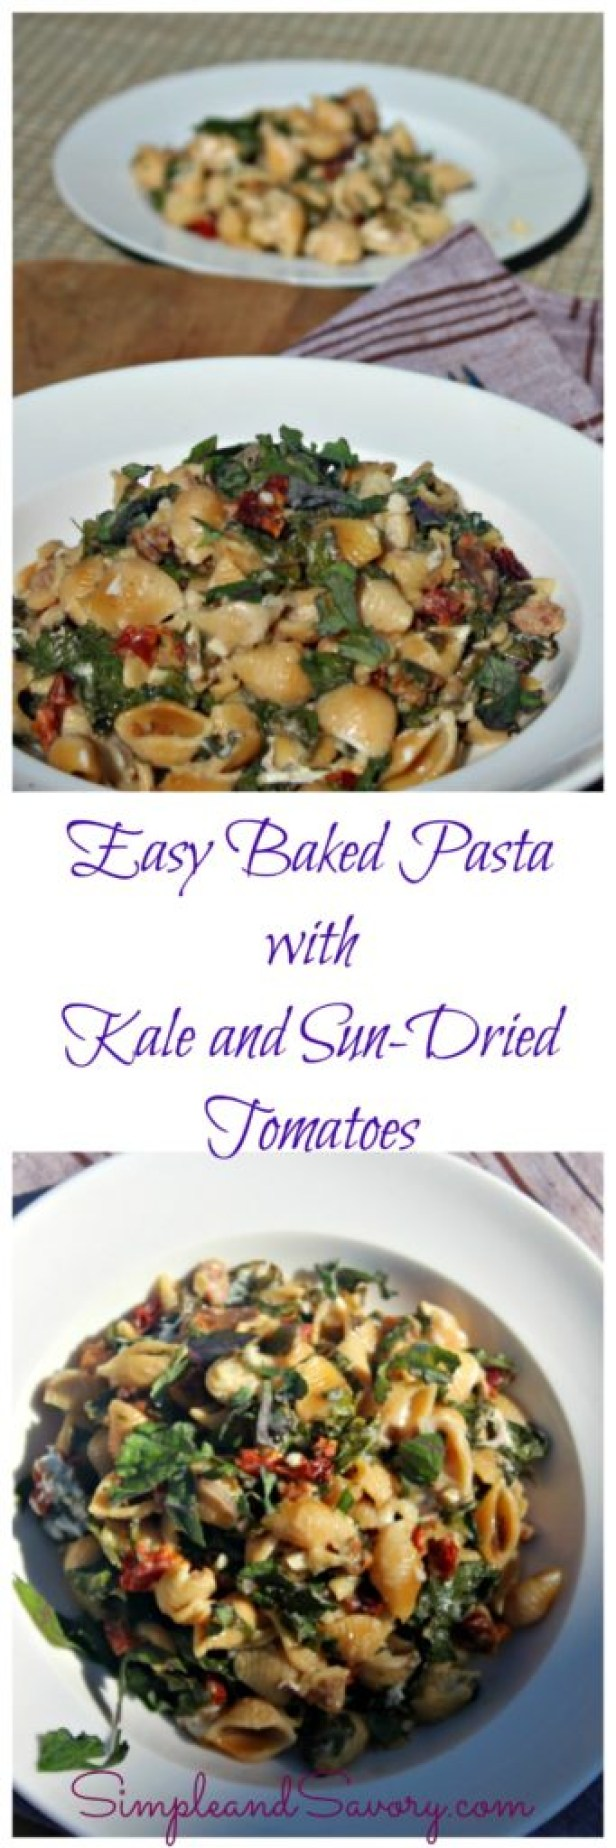 baked-pasta-with-kale-and-sun-dried-tomatoes-easy-health-make-ahead-dinner